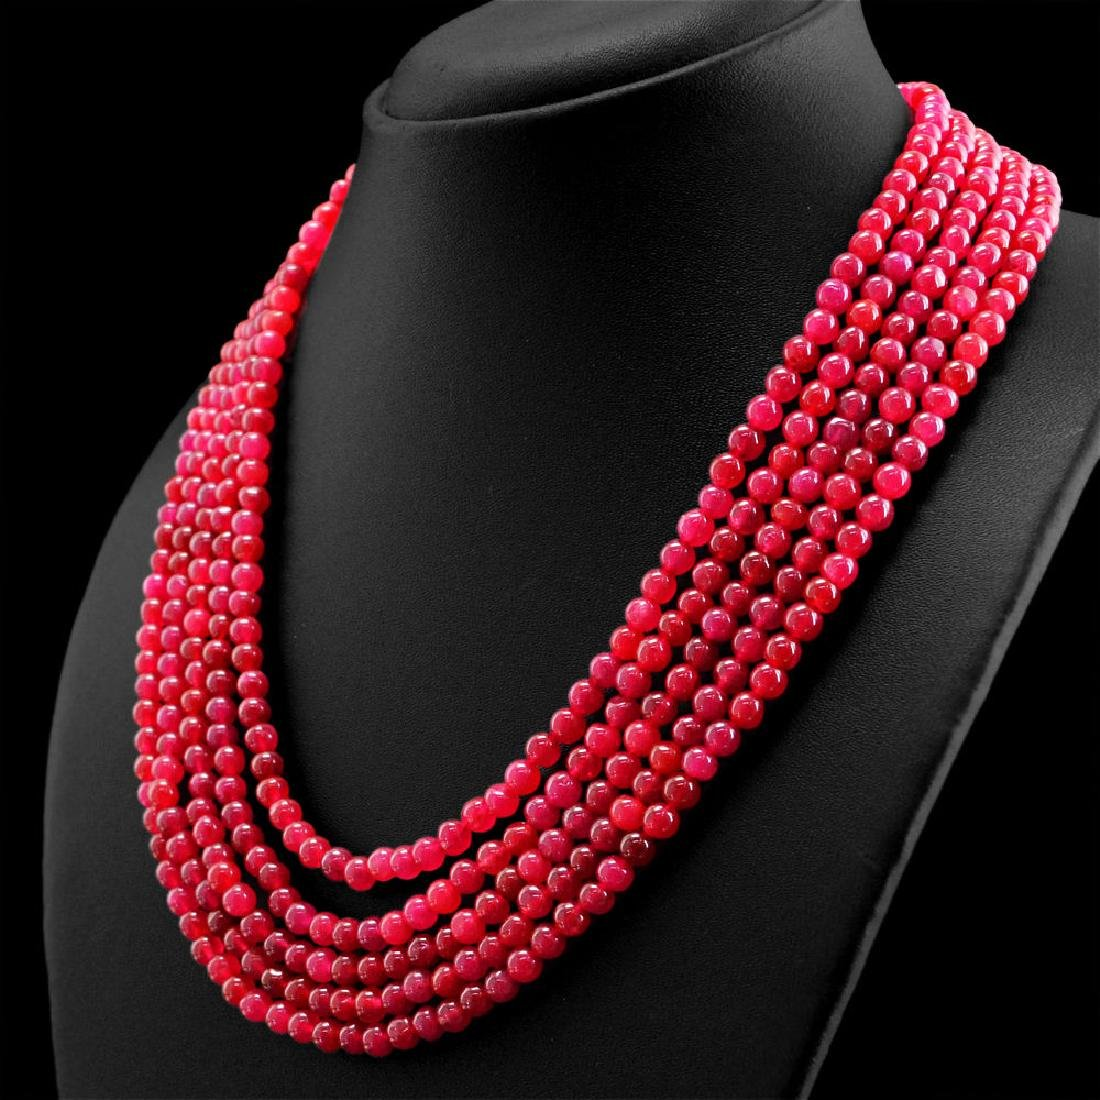 EARTH MINED 5 STRAND RICH RED RUBY ROUND BEADS HAND MAD